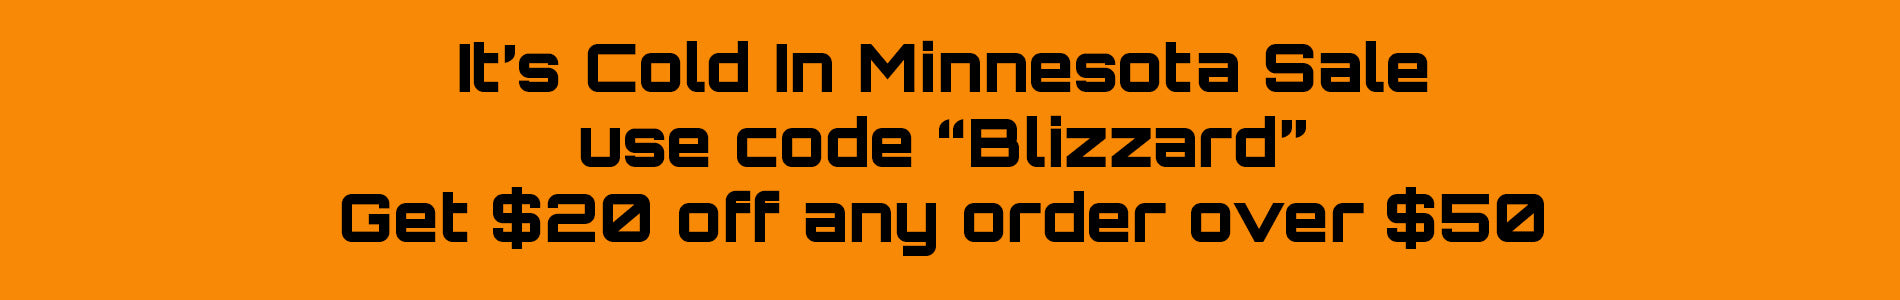 use code blizzard for $20 off orders over $50